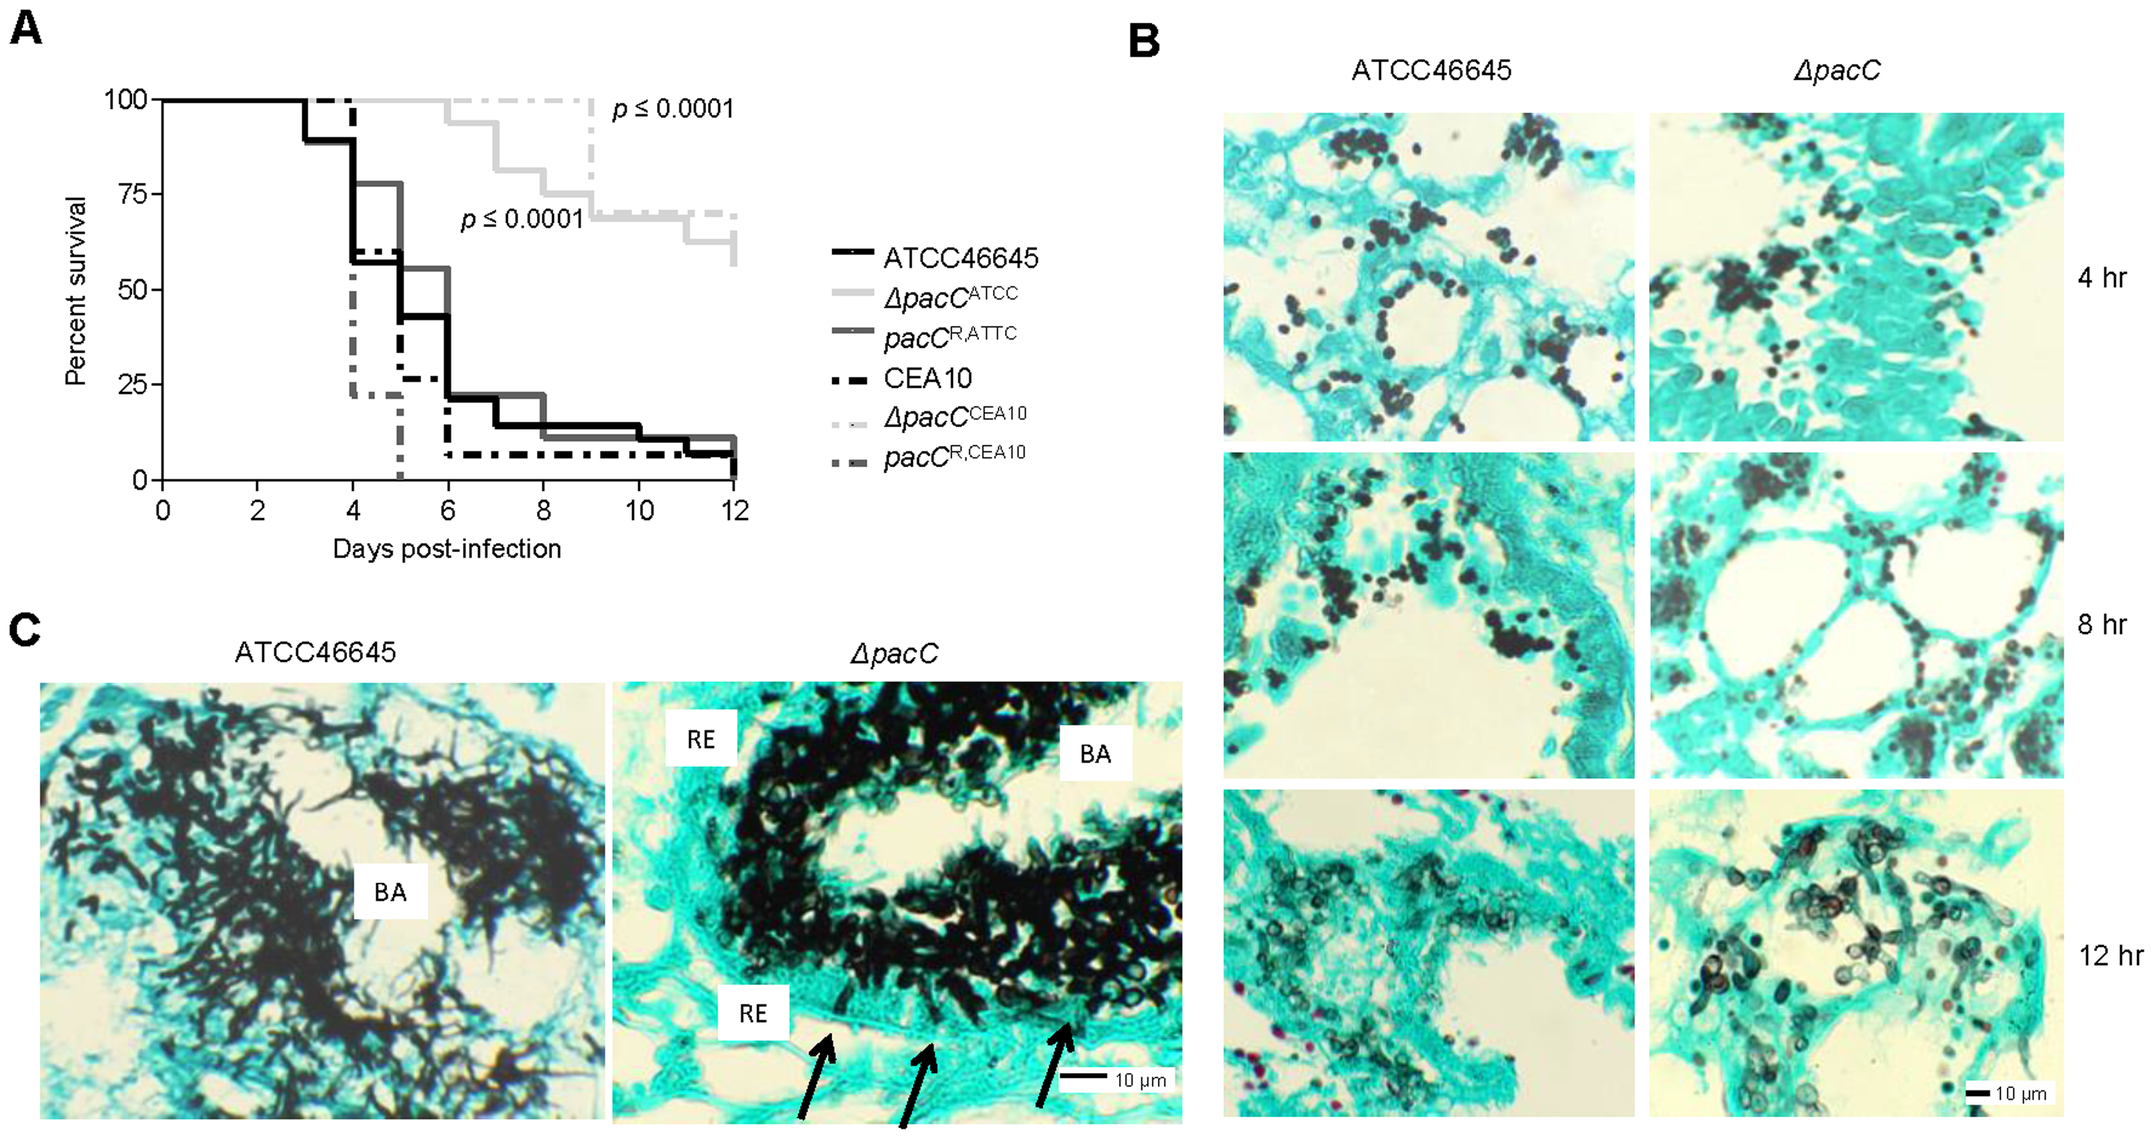 PacC is required for pathogenicity and epithelial invasion in leukopenic mice.